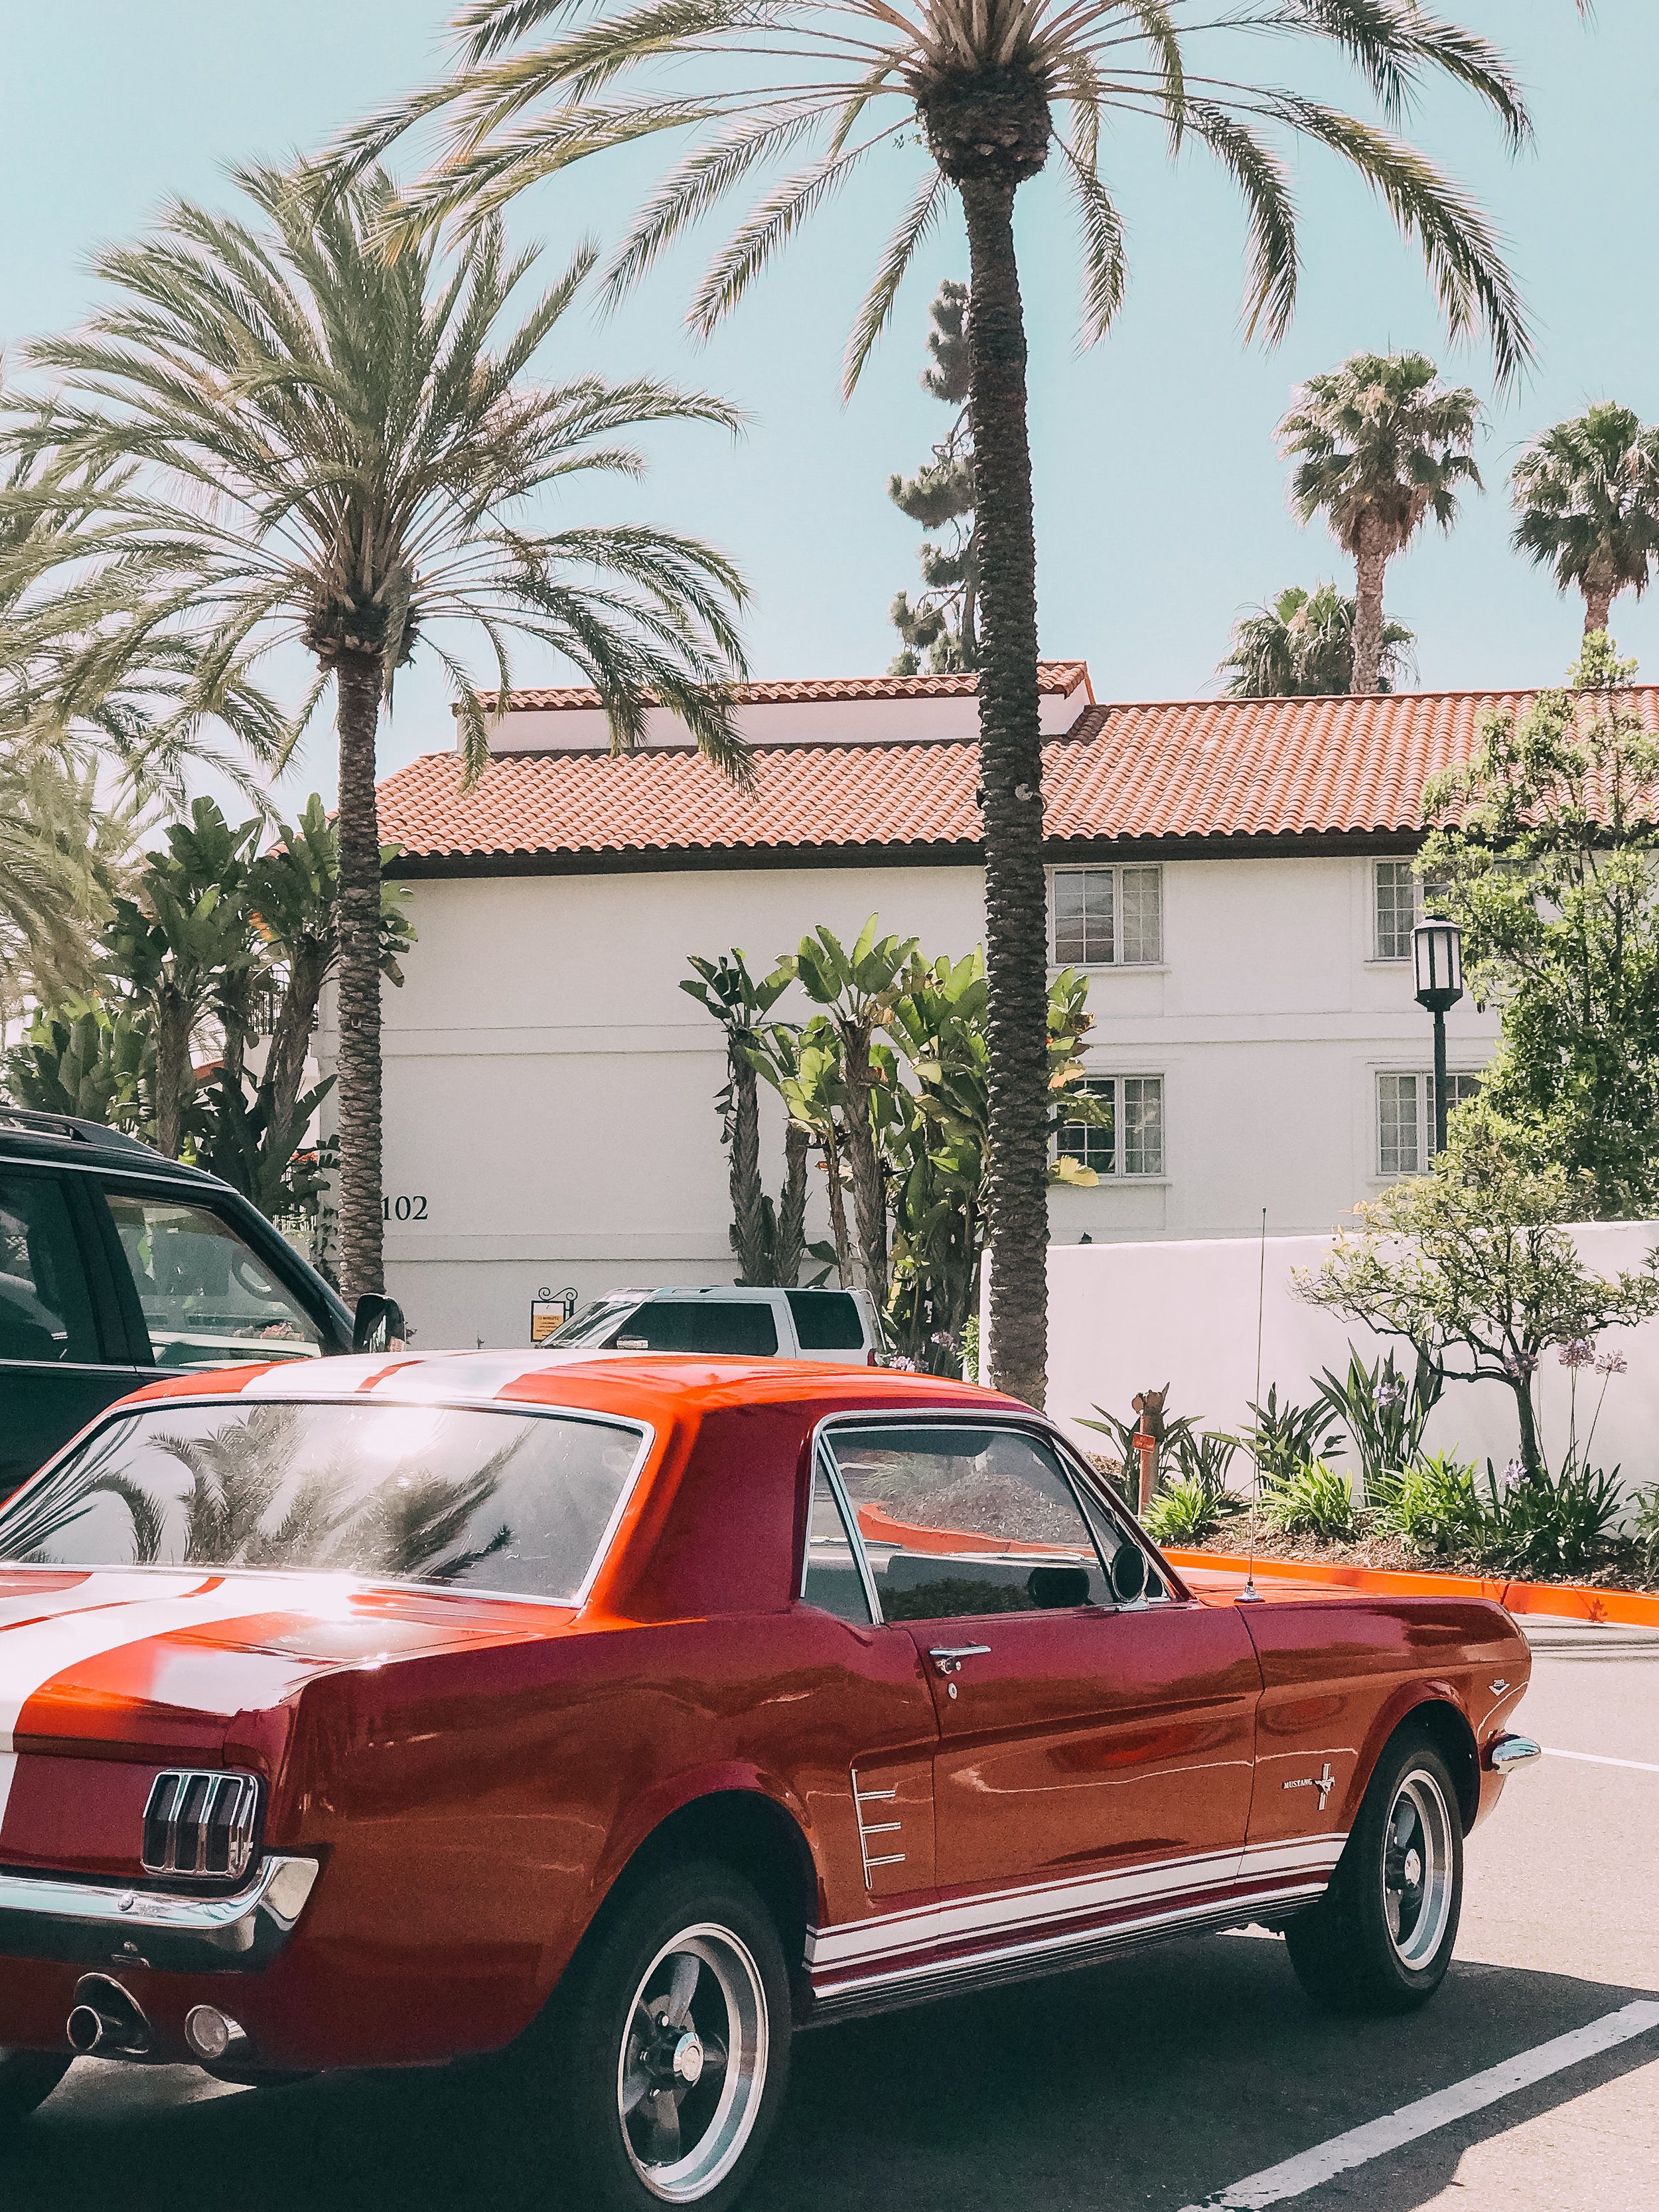 Vintage red mustang parked outside the Omni La Costa Resort & Spa